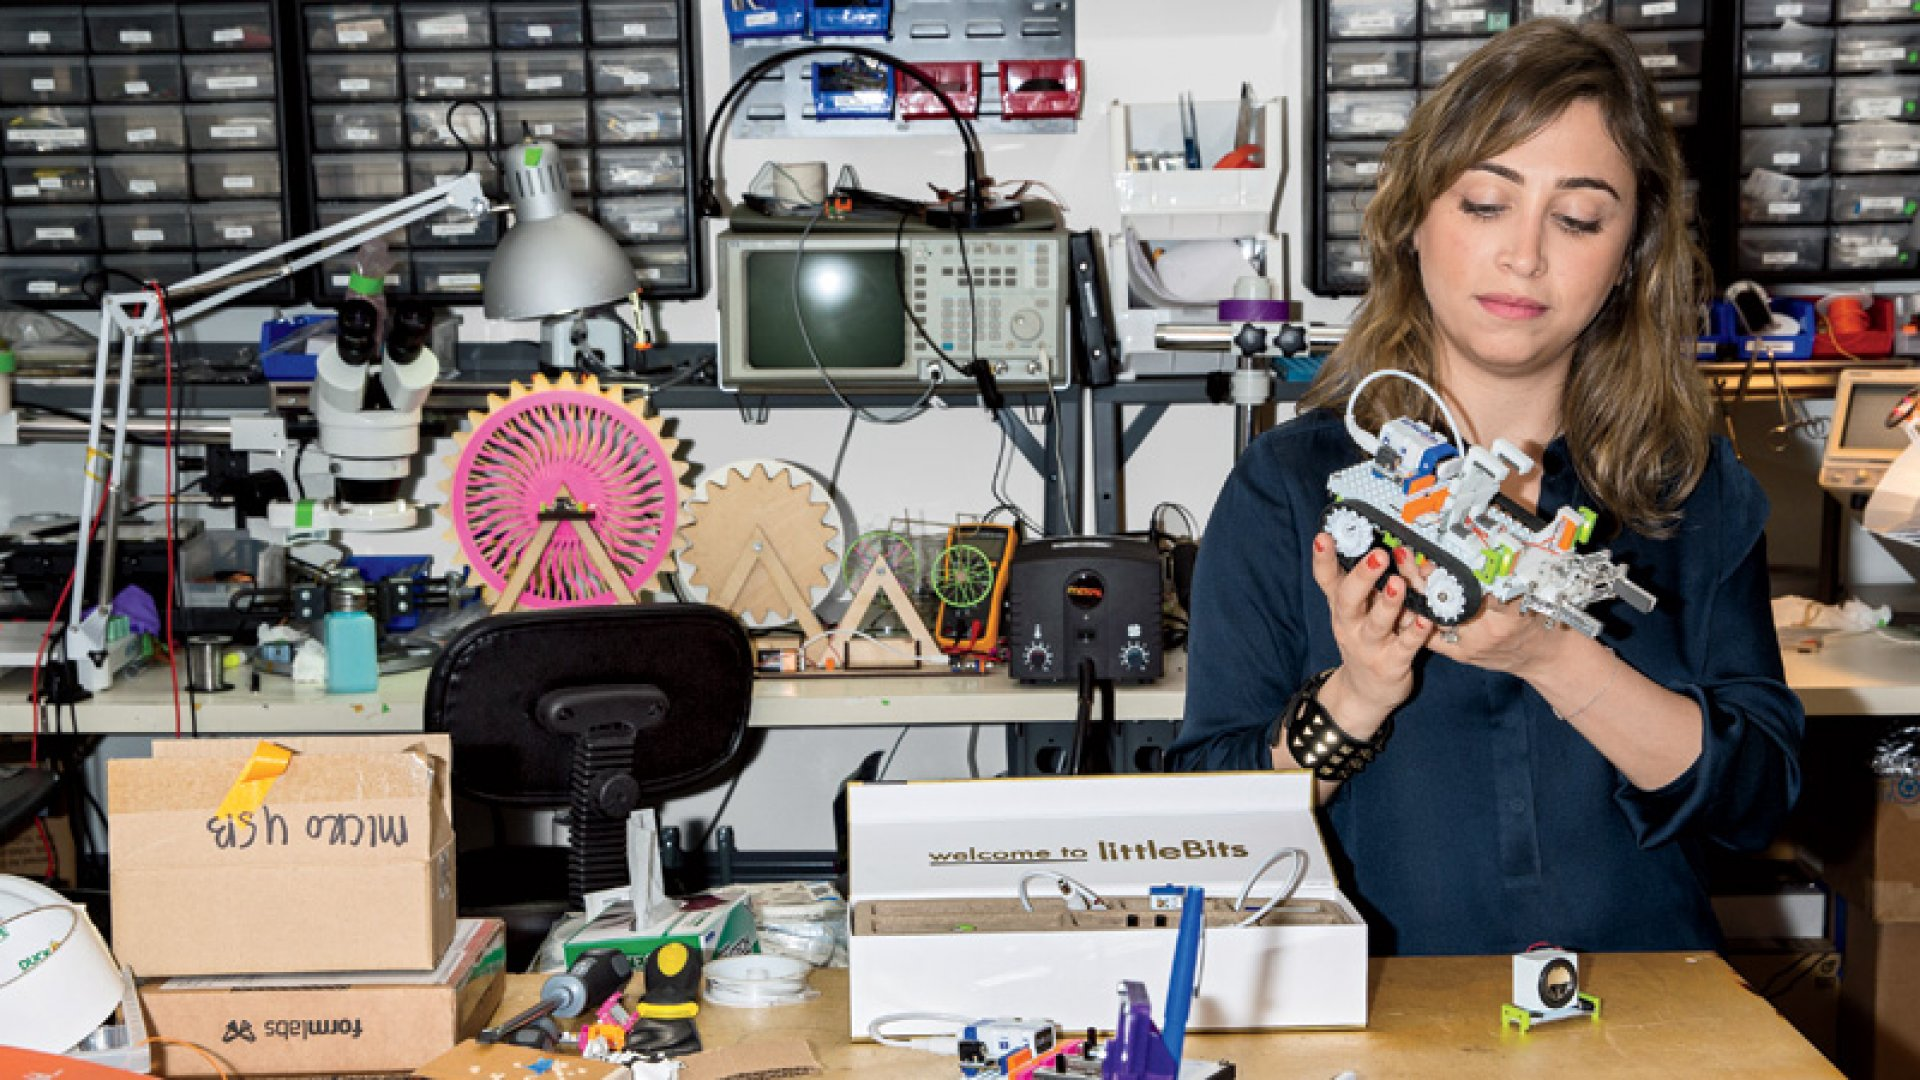 Ayah Bdeir is an interactive artist who was educated as an engineer before founding LittleBits, the modular-electronics company she now runs in New York City.